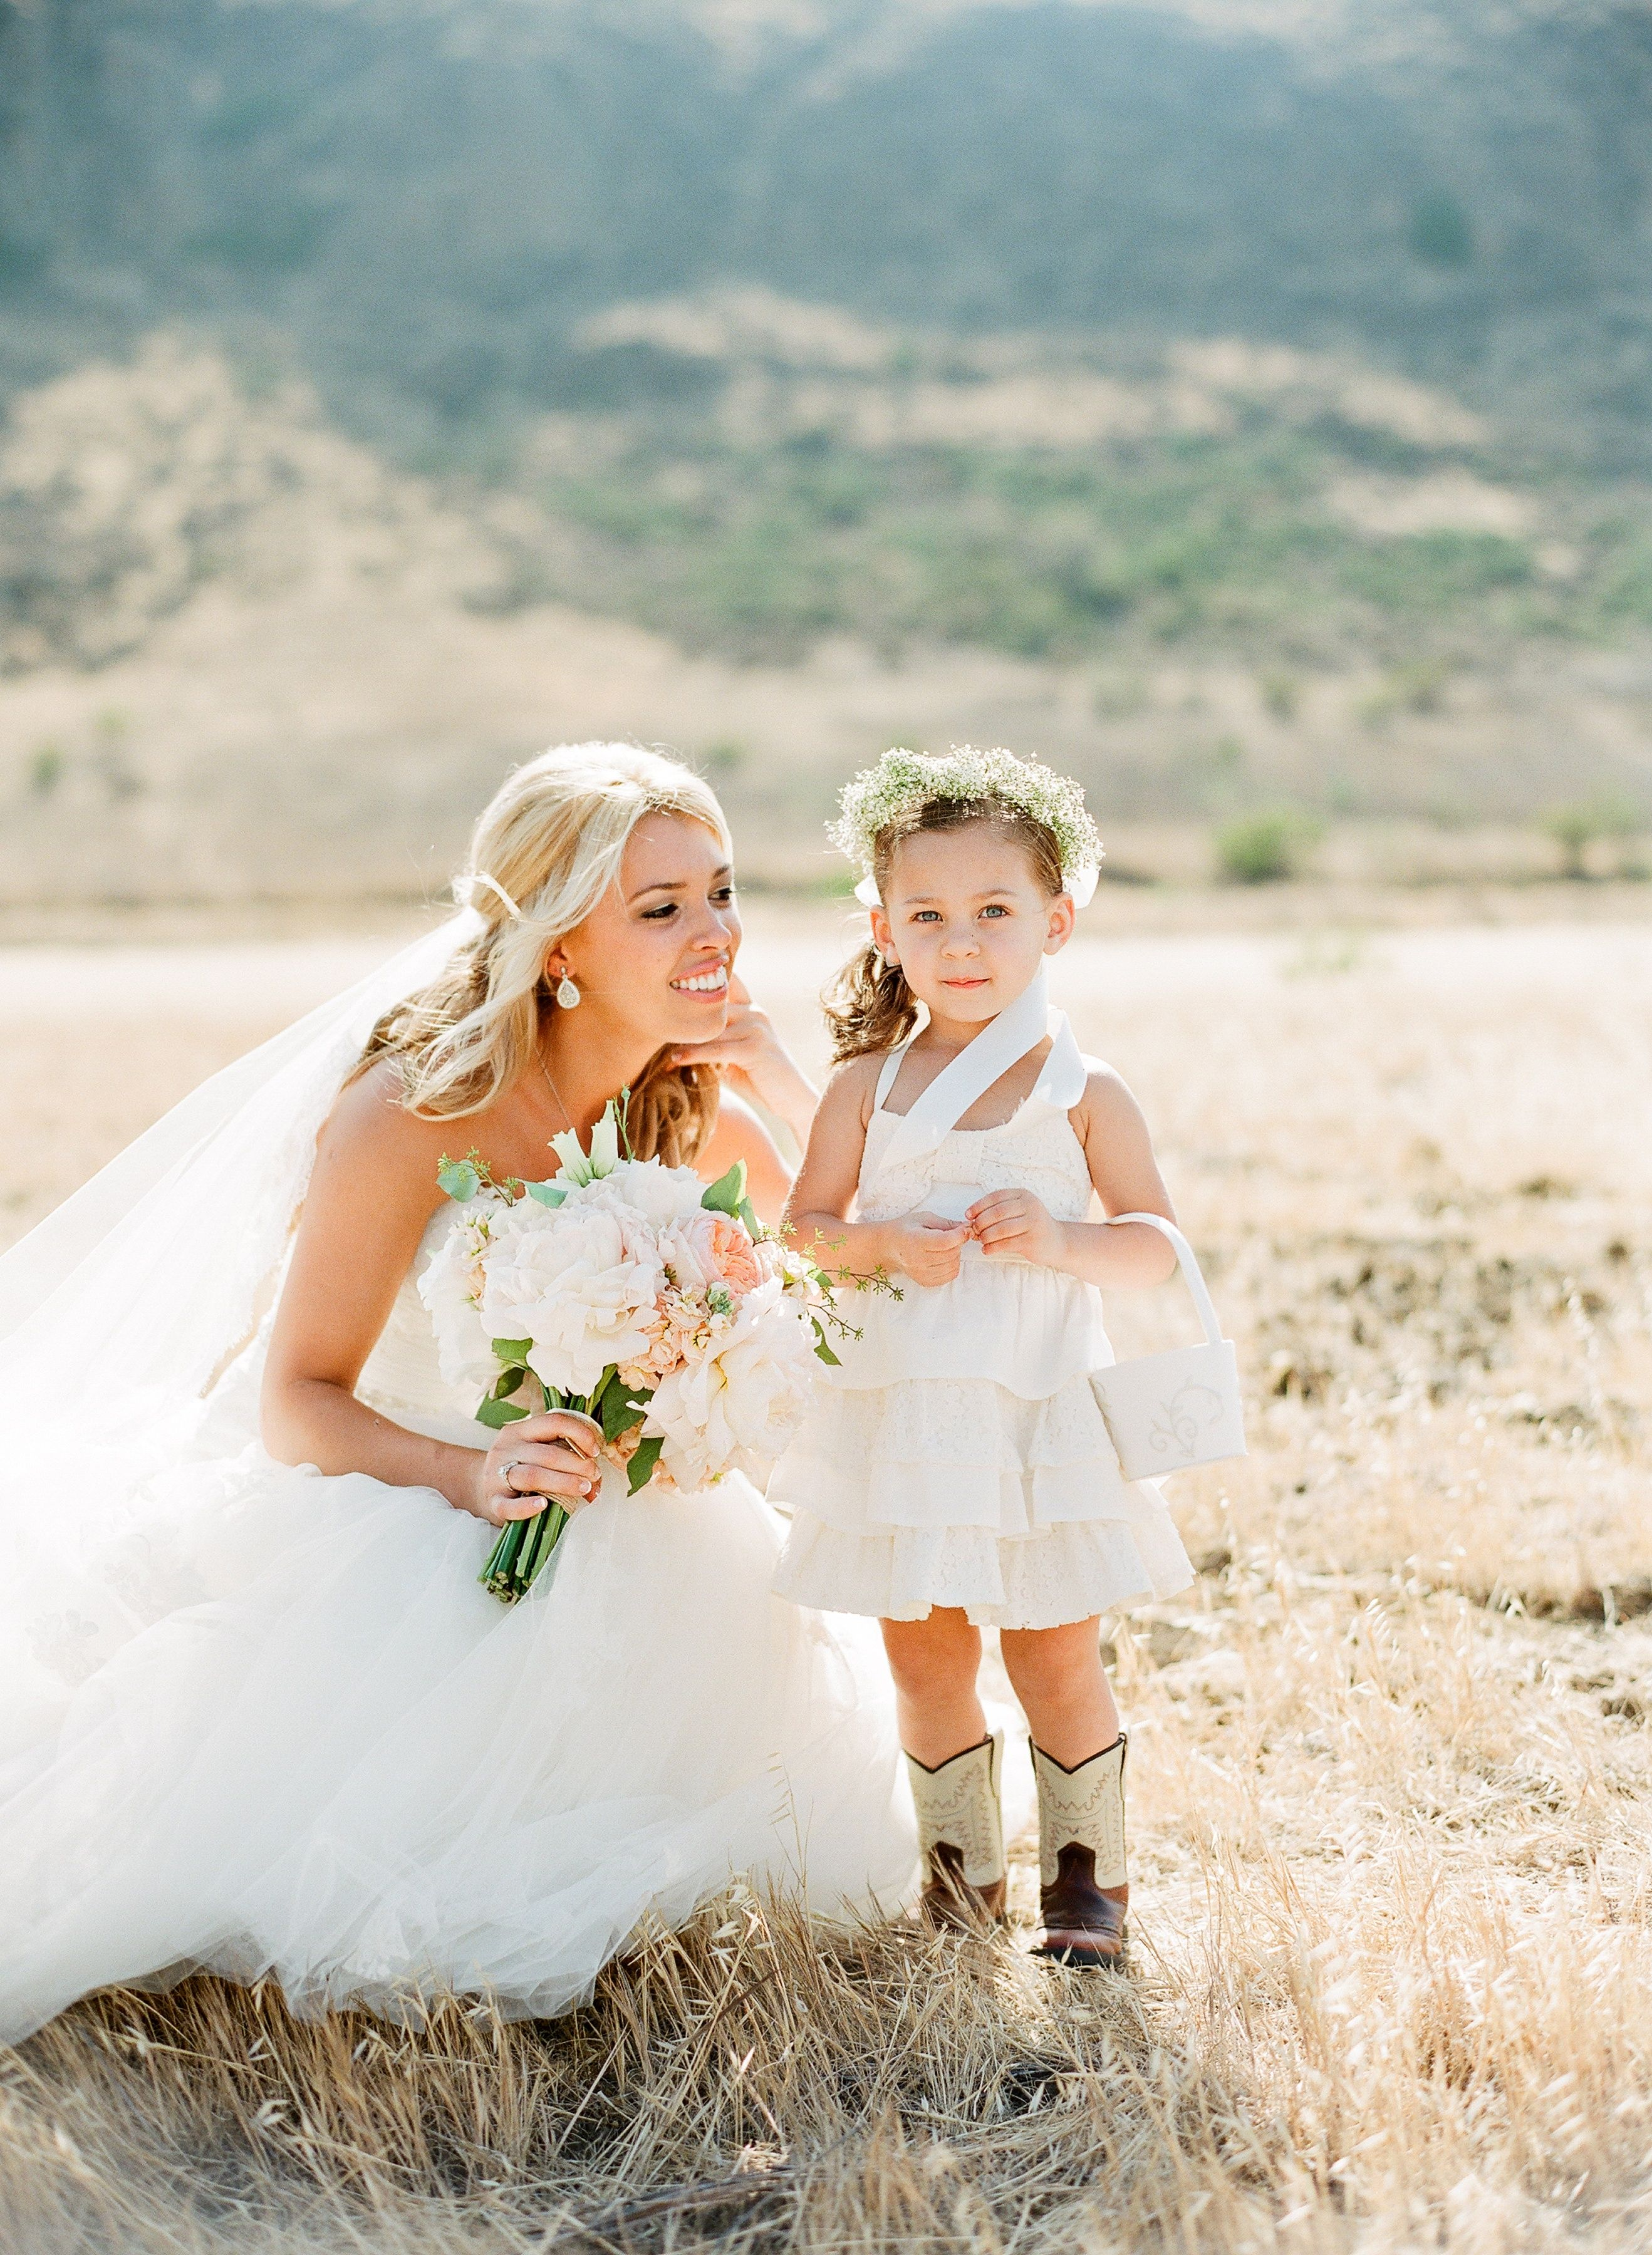 Casual Country Flower Girl Look Lavender and Twine